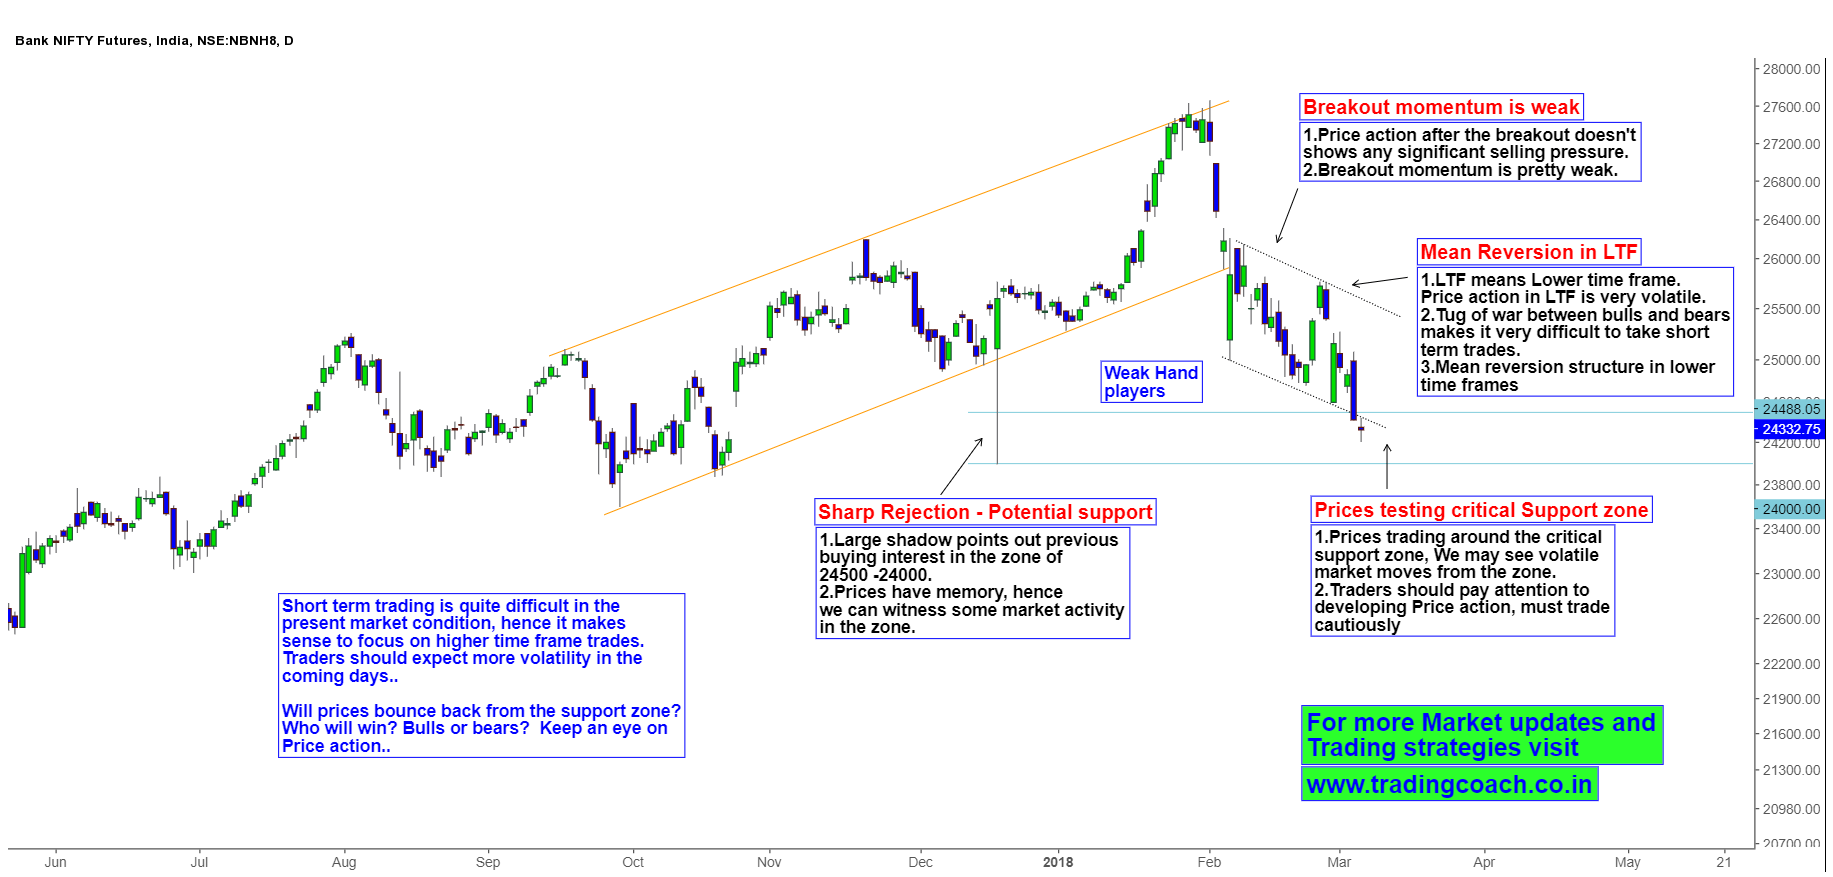 Bank Nifty Price action testing the Critical support zone